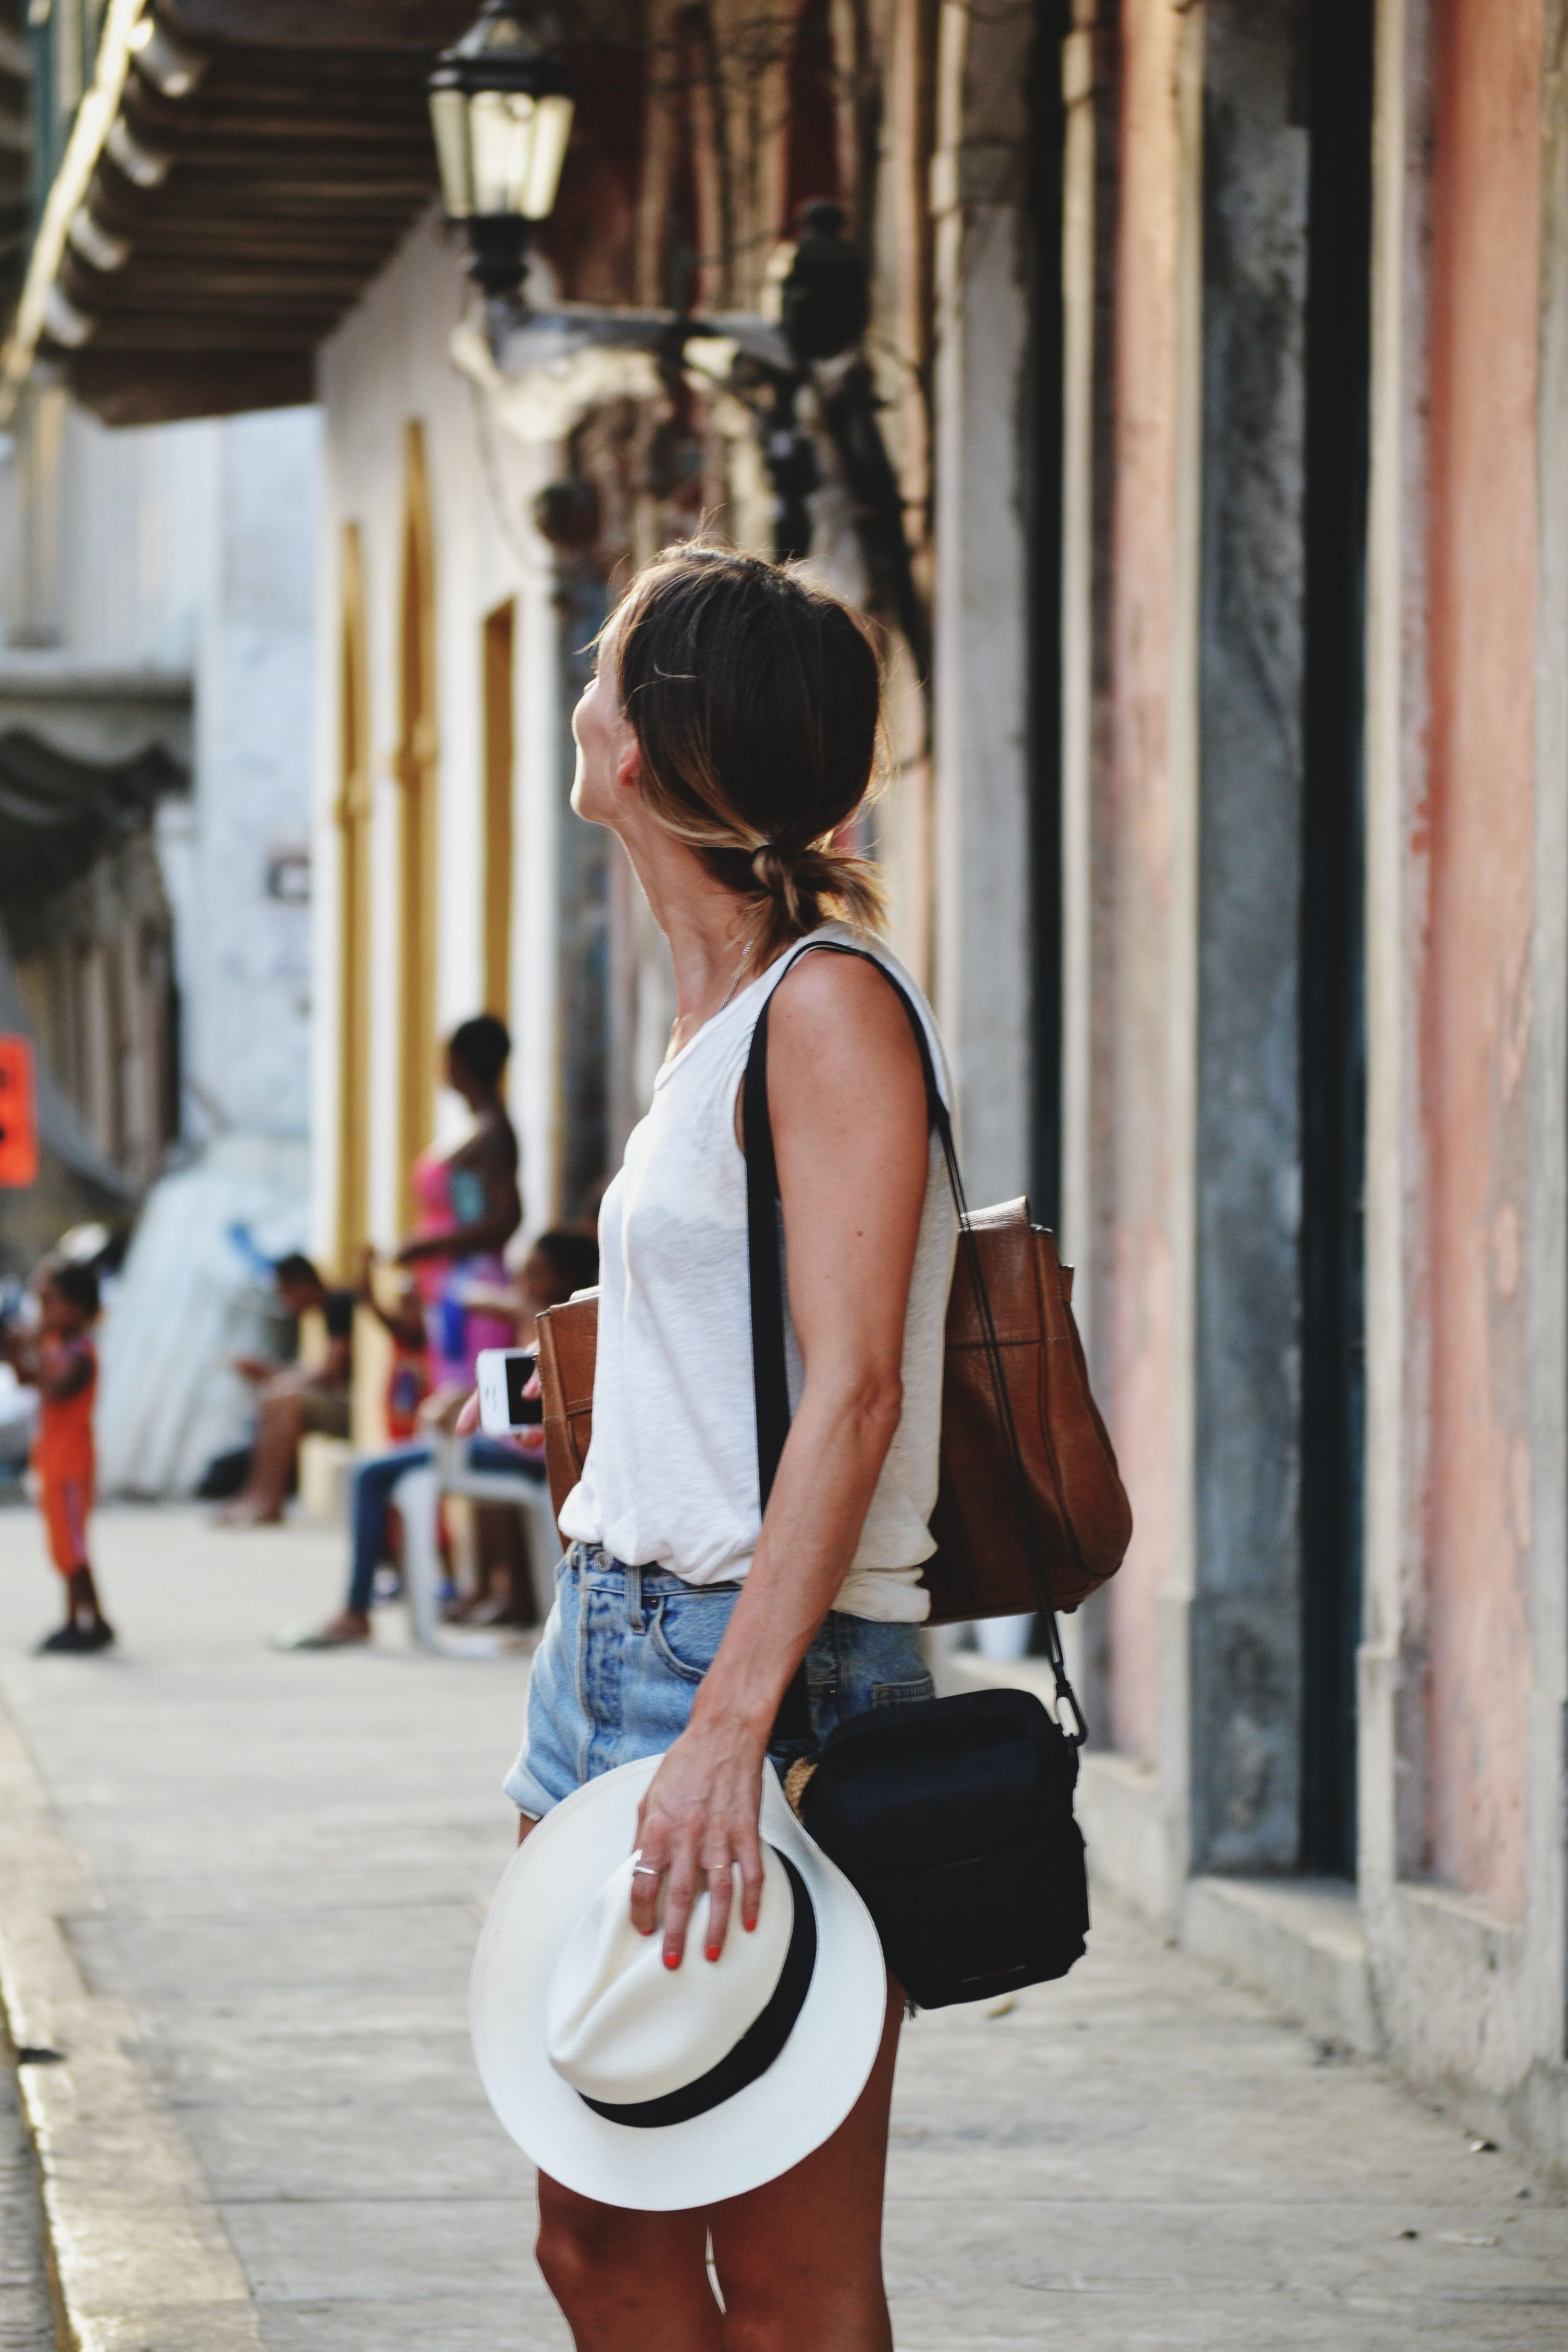 I love this image of Panama. It reminds me of NOLA. Great blog-lucy laucht